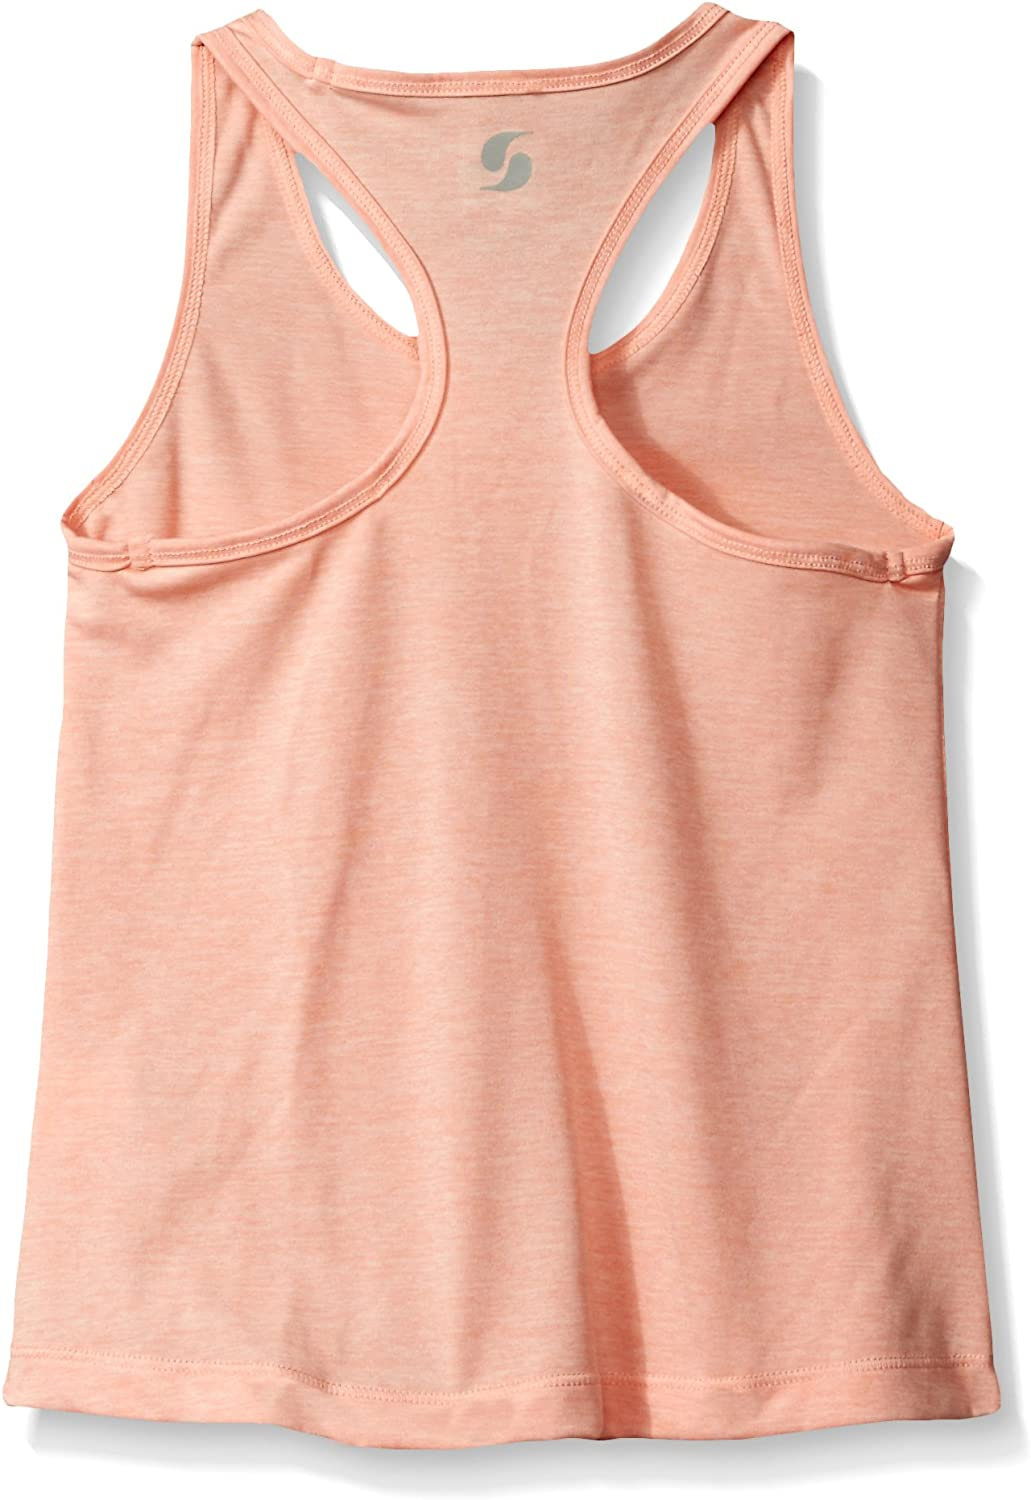 Soffe Girls Performance Racer Tank Top